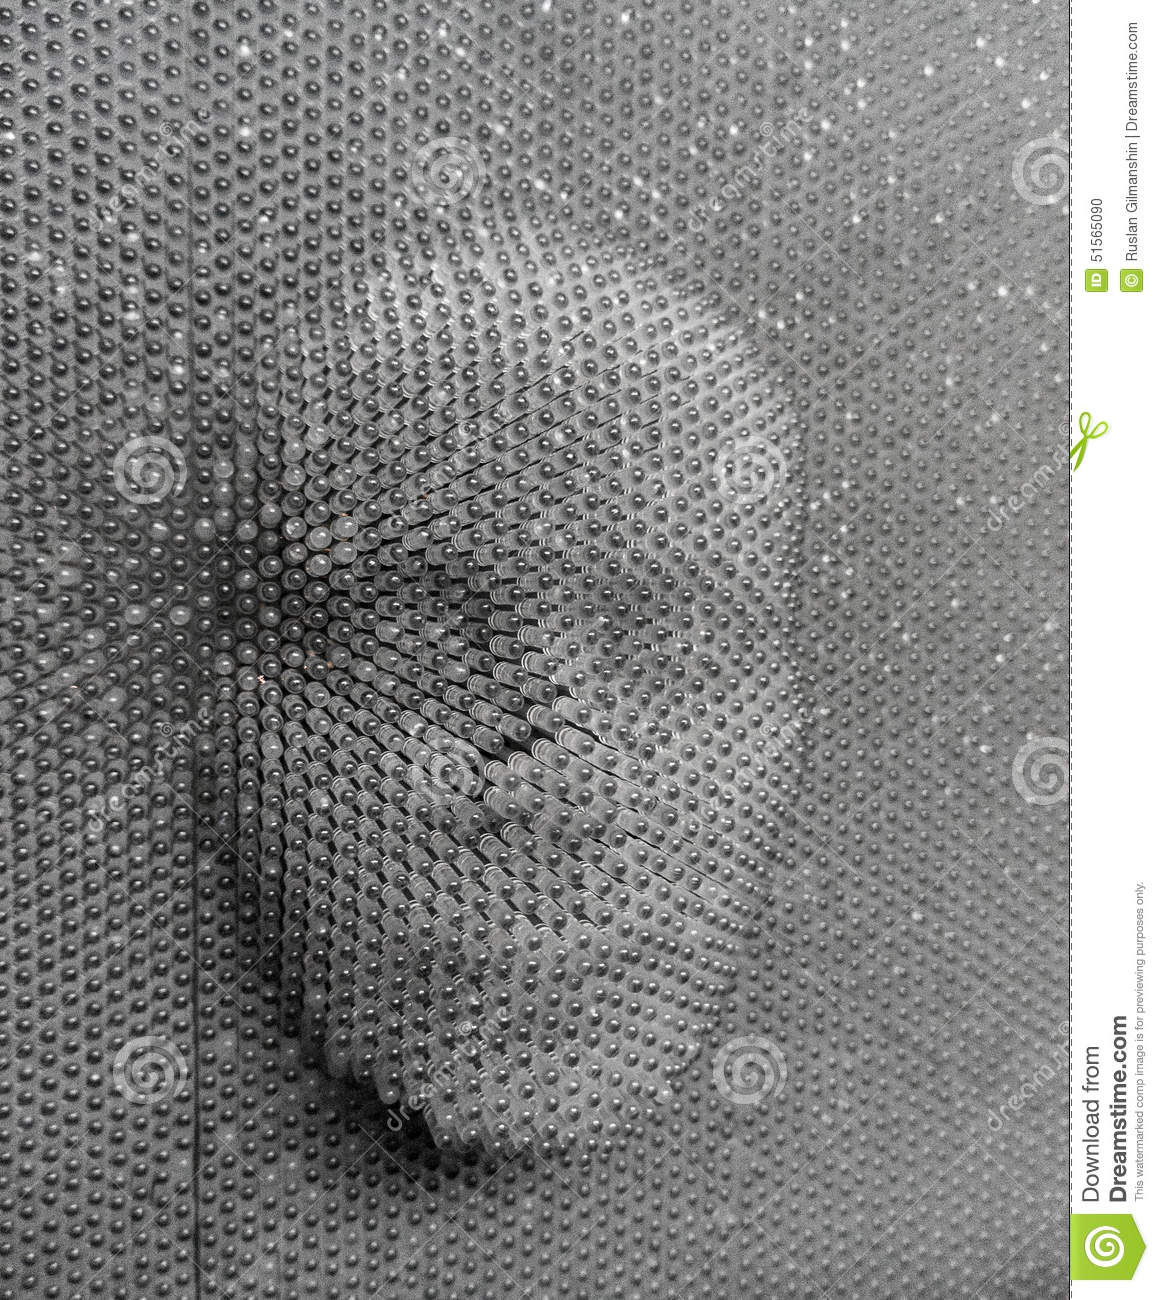 Human face made from pin board toy